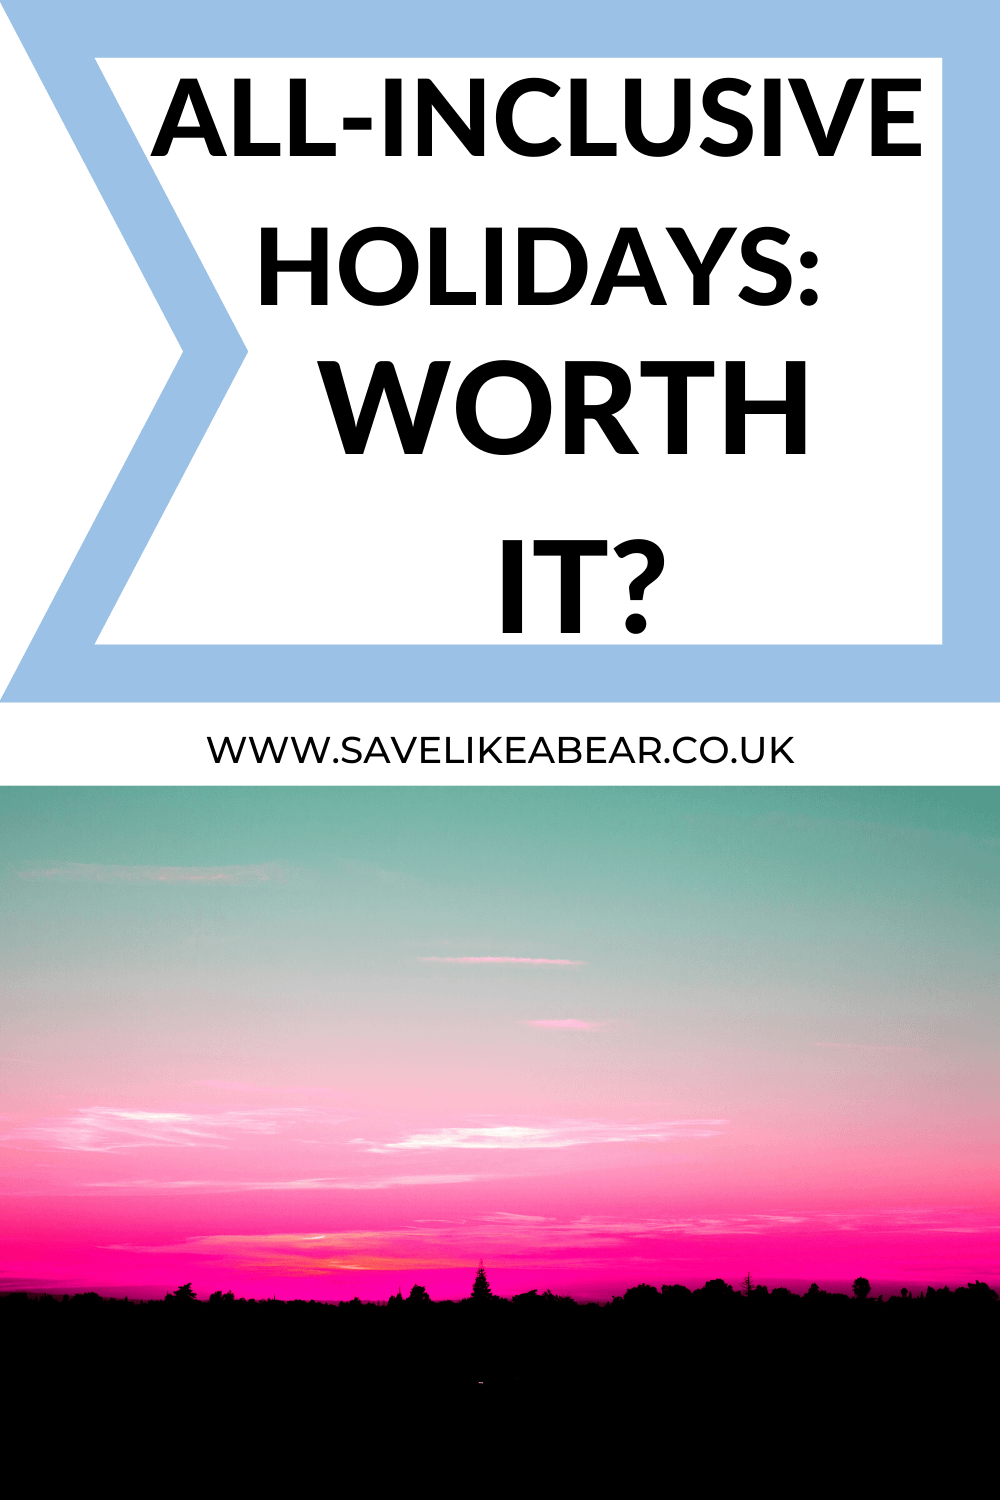 pink sunset abroad titled All-inclusive holidays: worth it?